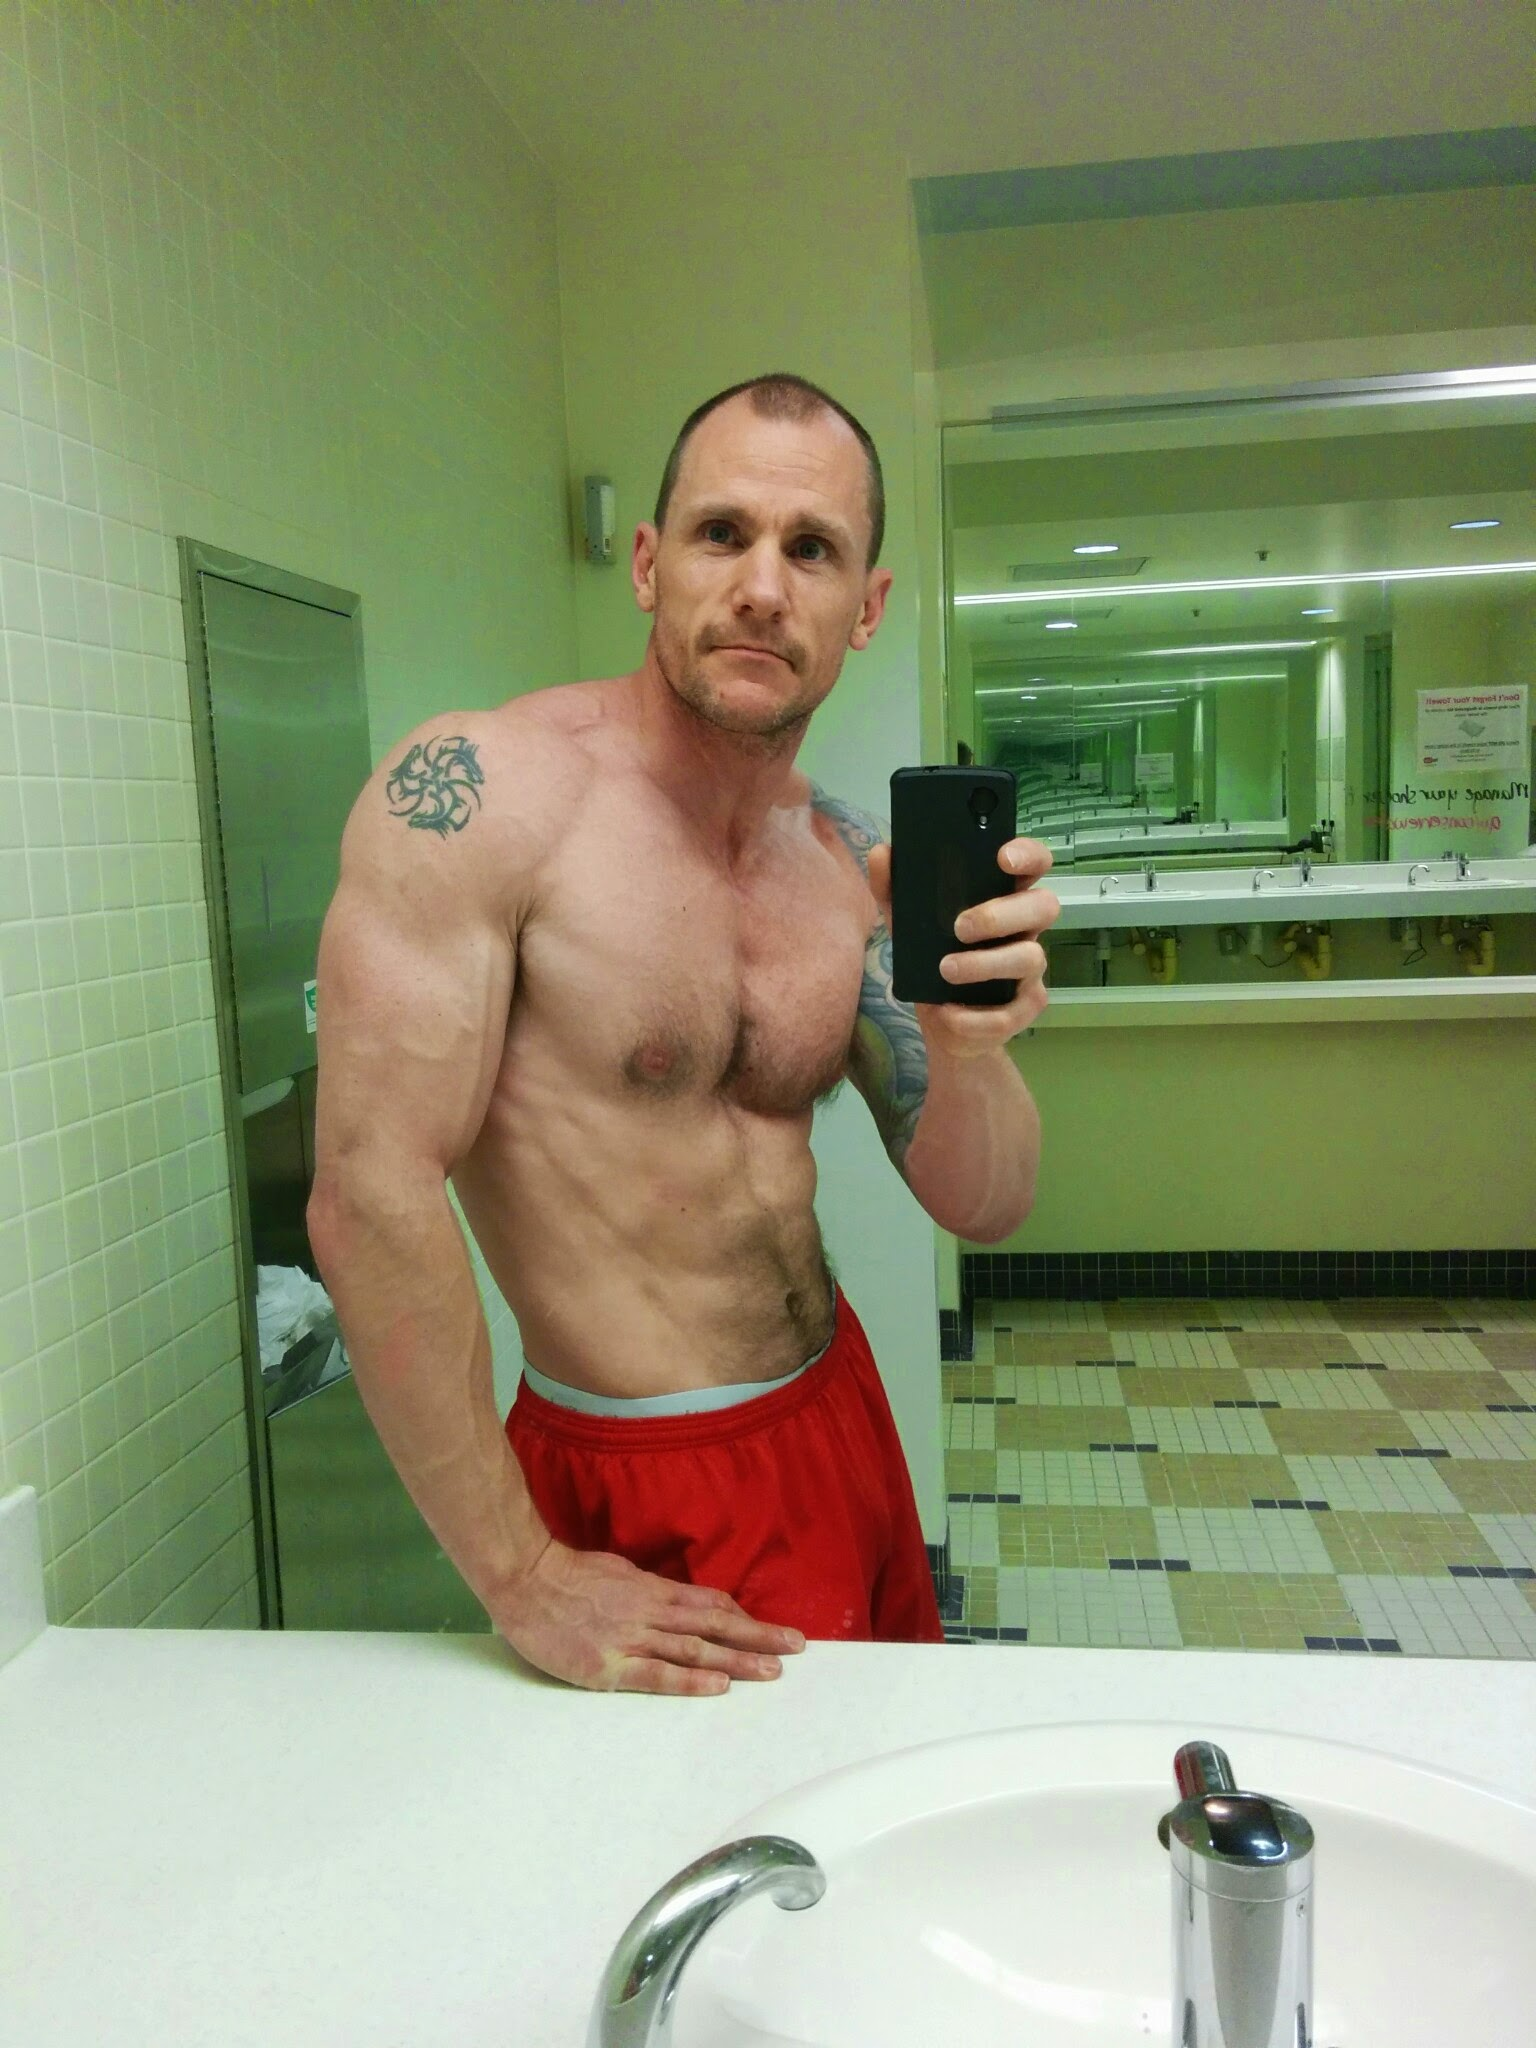 Me at 173lb and 10% body fat